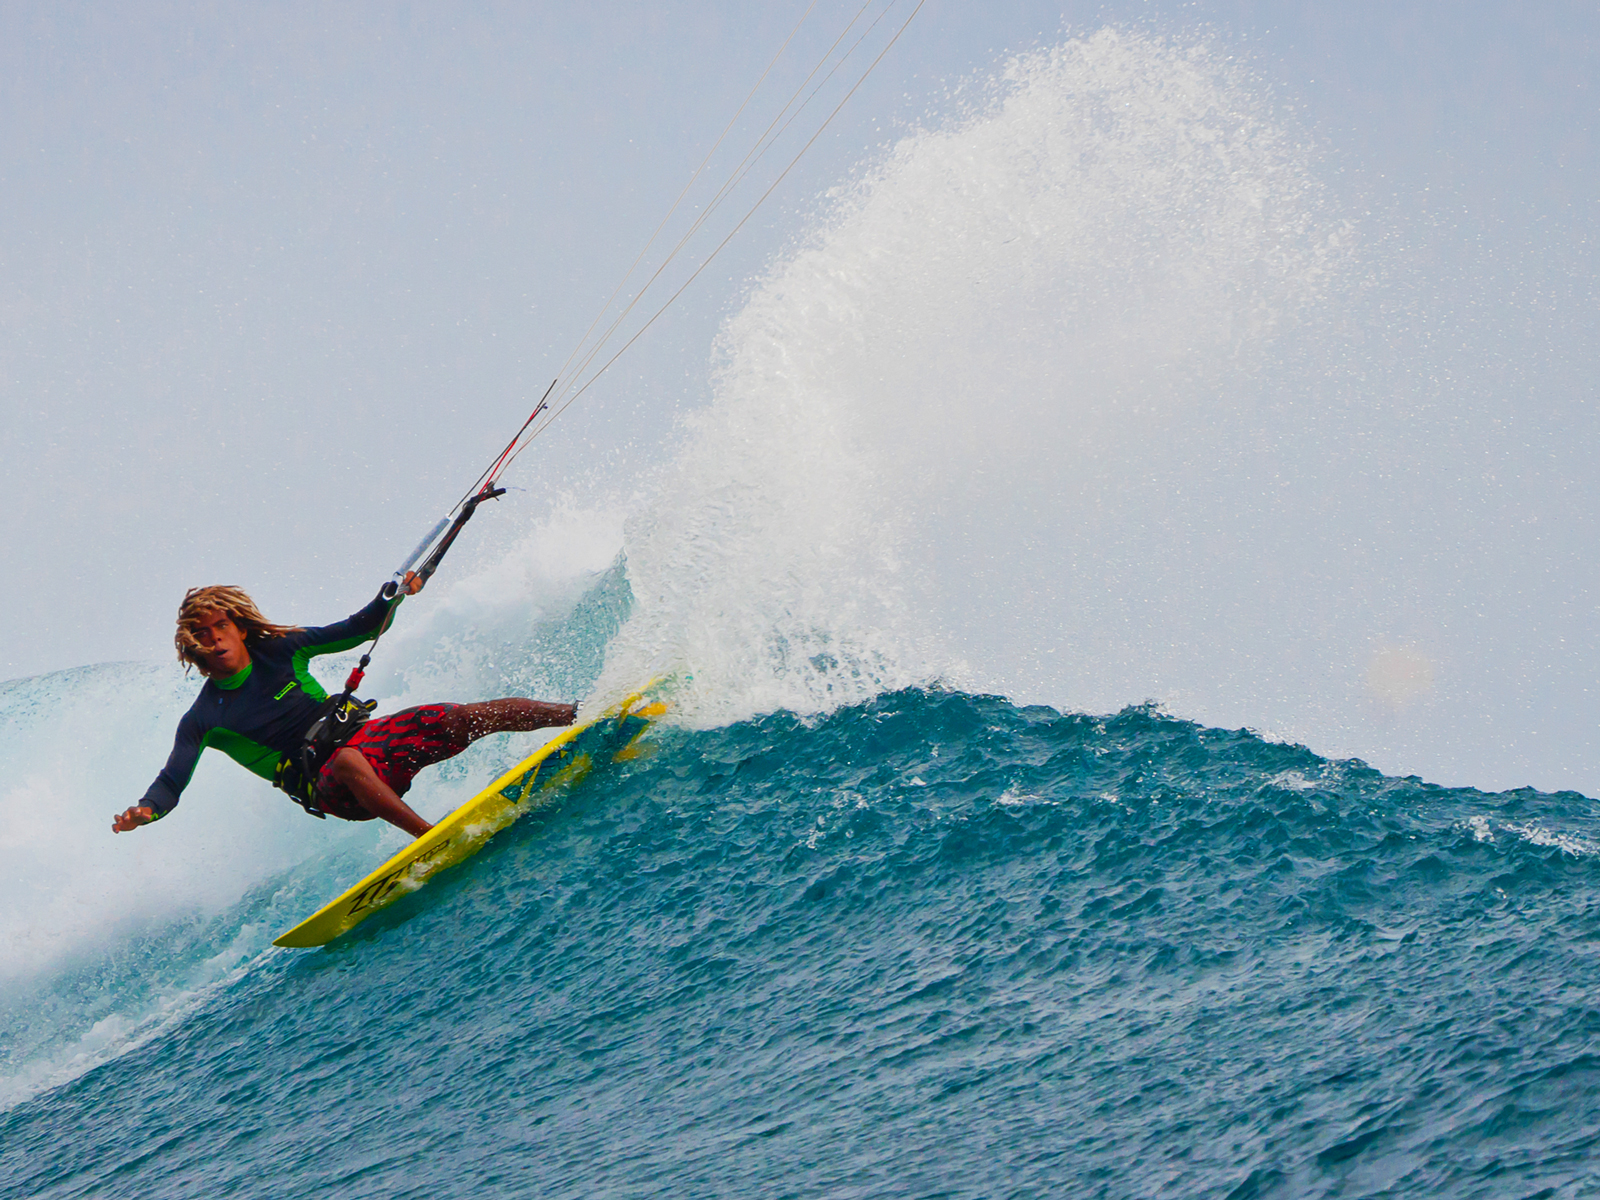 kitesurf wallpaper image - Airton Cozzolino ripping on a wave - North Kiteboarding - in resolution: Standard 4:3 1600 X 1200